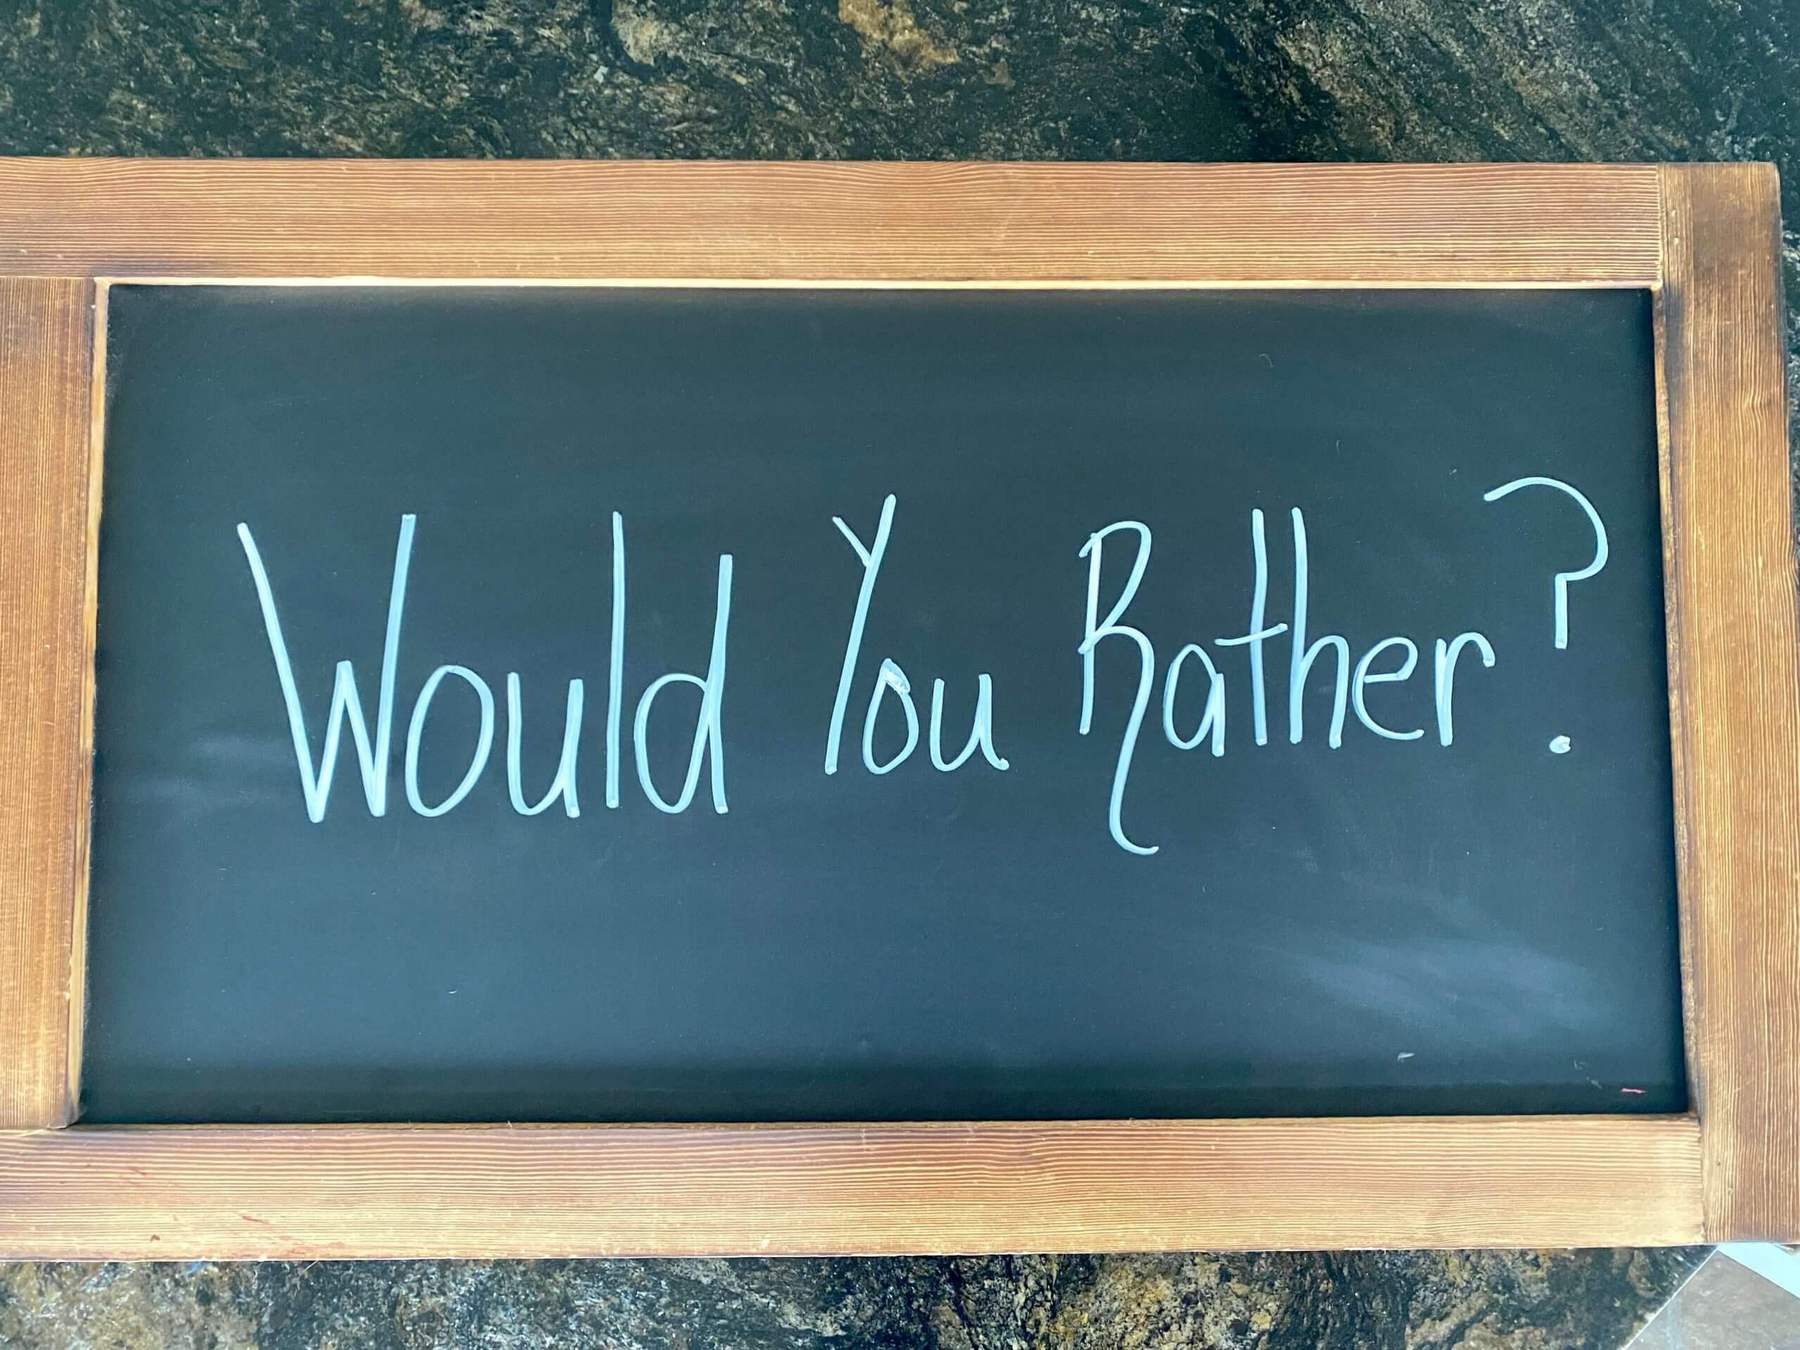 Would You Rather written on a chalkboard